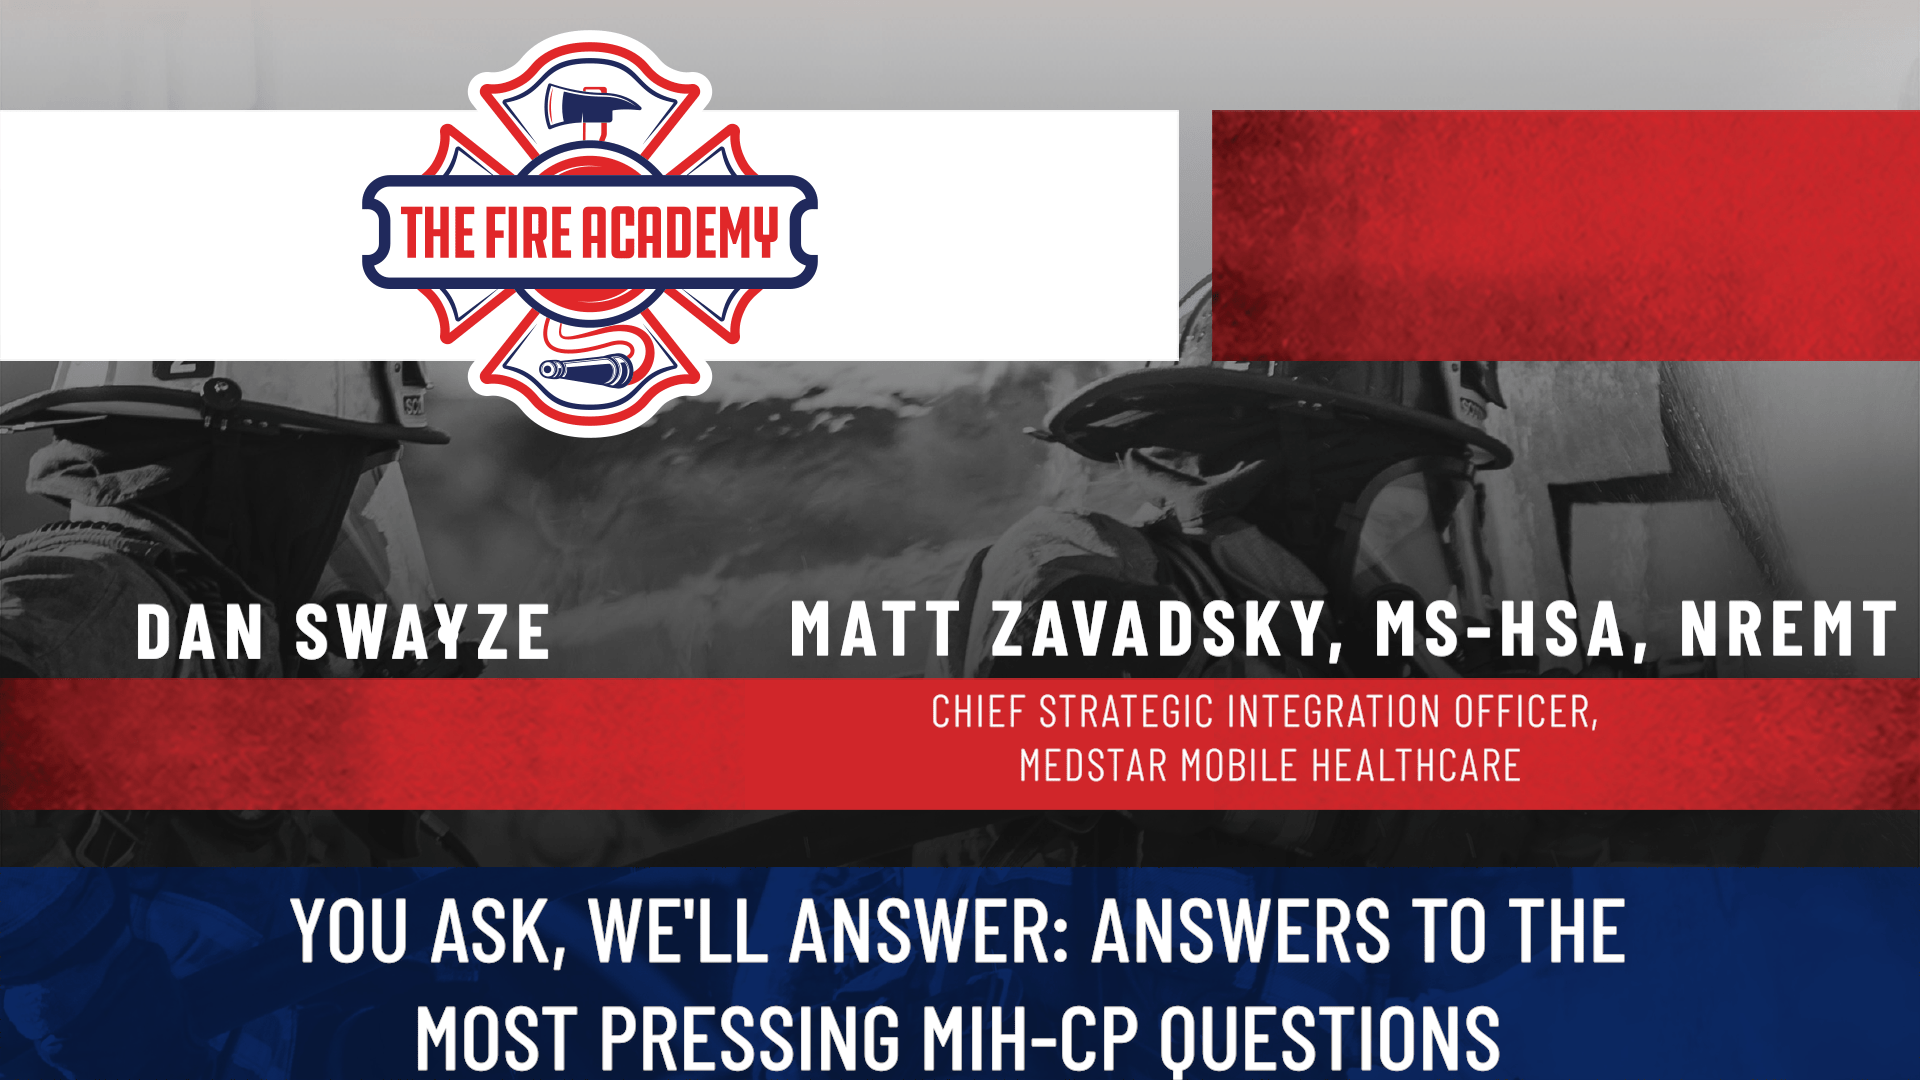 You Ask' We'll Answer: Answers to the Most Pressing MIH-CP Questions